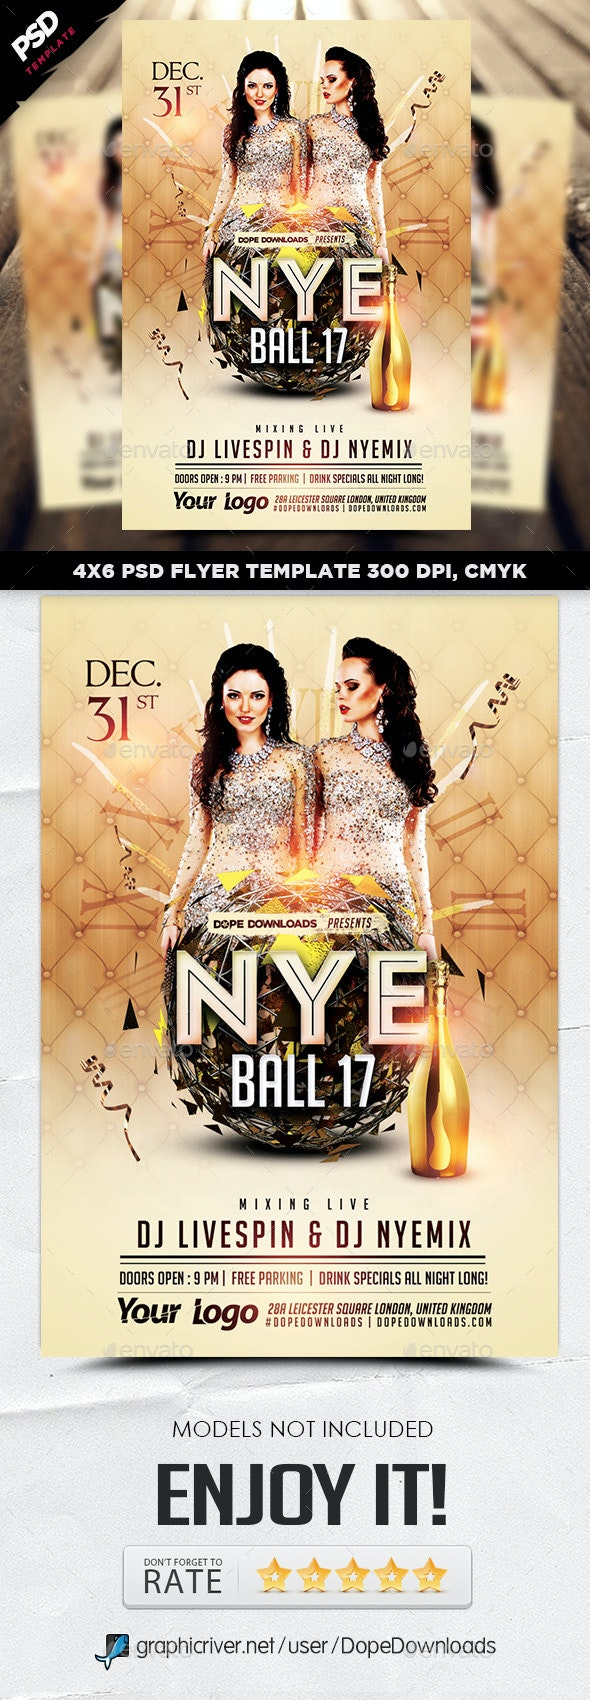 NYE Ball 17 Flyer Template - Holidays Events